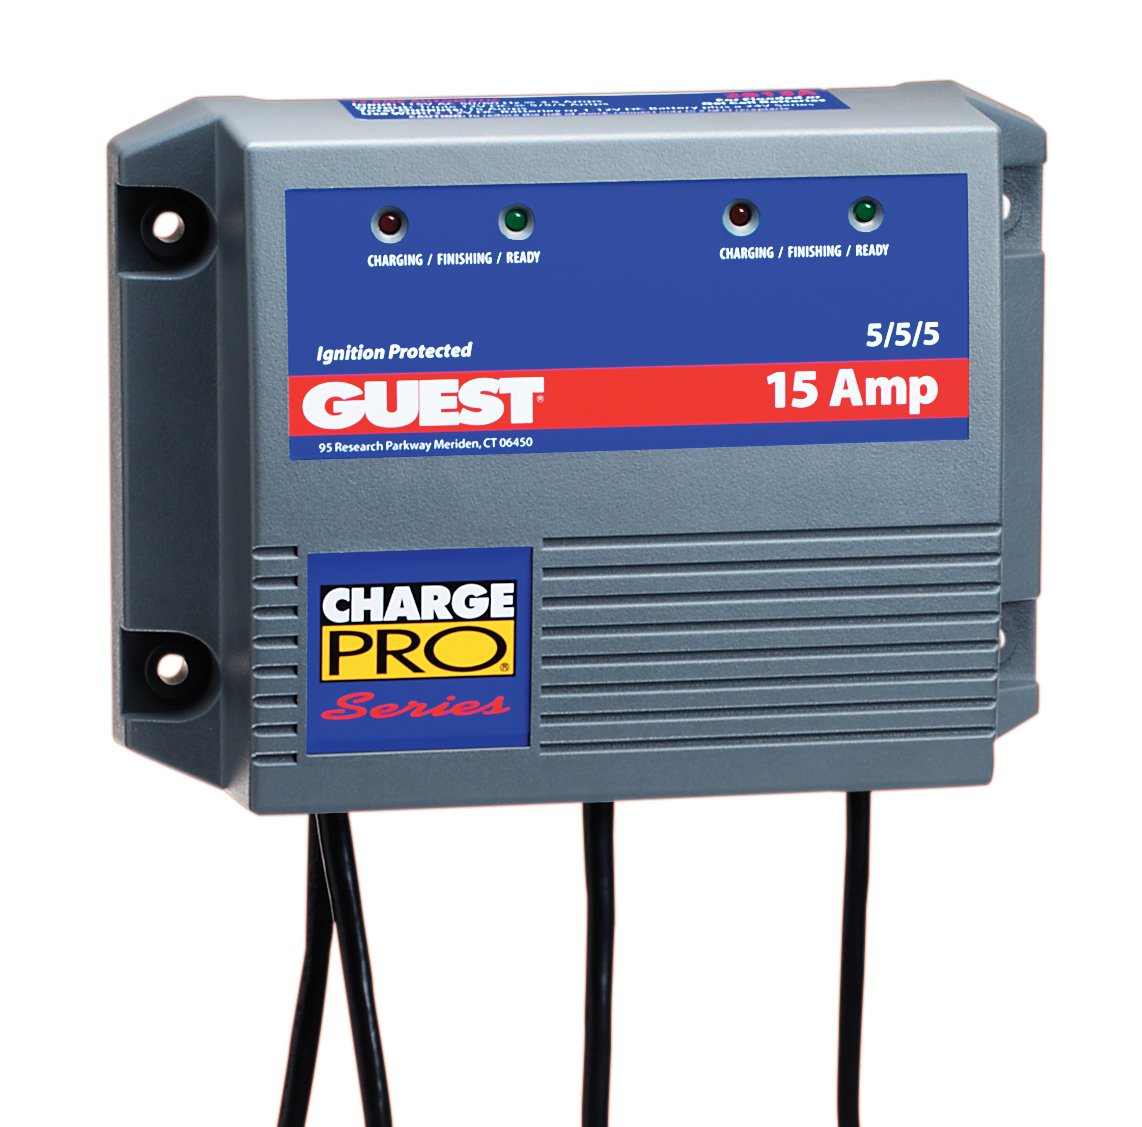 medium resolution of 15 amp triple output charge pro battery charger 15a 5 5 5 12 24 24 volt trolling motor diagram 3 bank charger wiring diagram